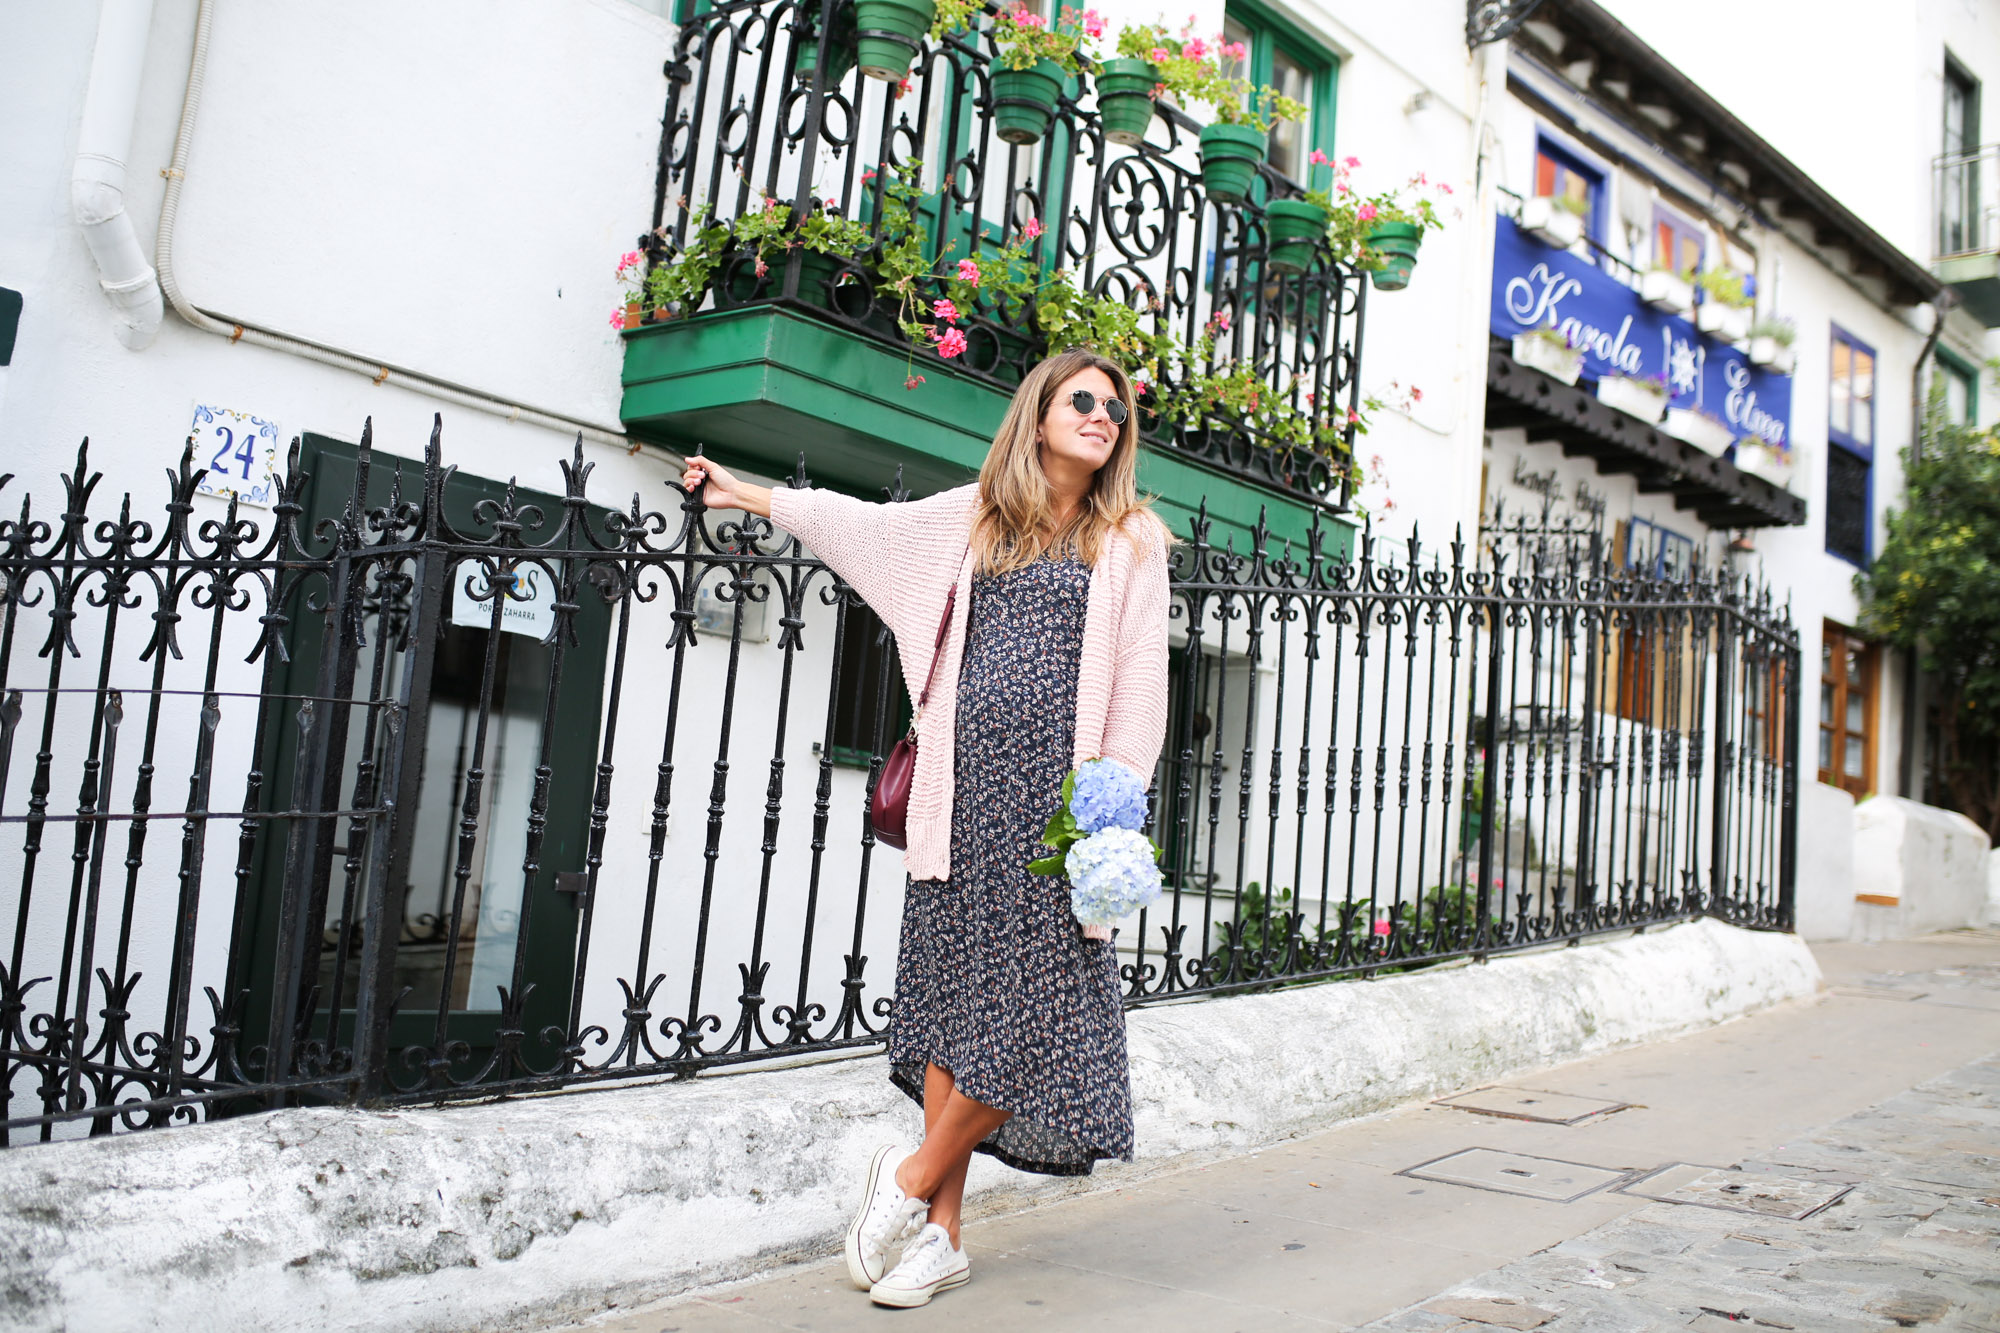 Clochet_streetstyle_fashionblogger_eseoese_flowerprintmididress_converse_americanvintage_pinkknit-5